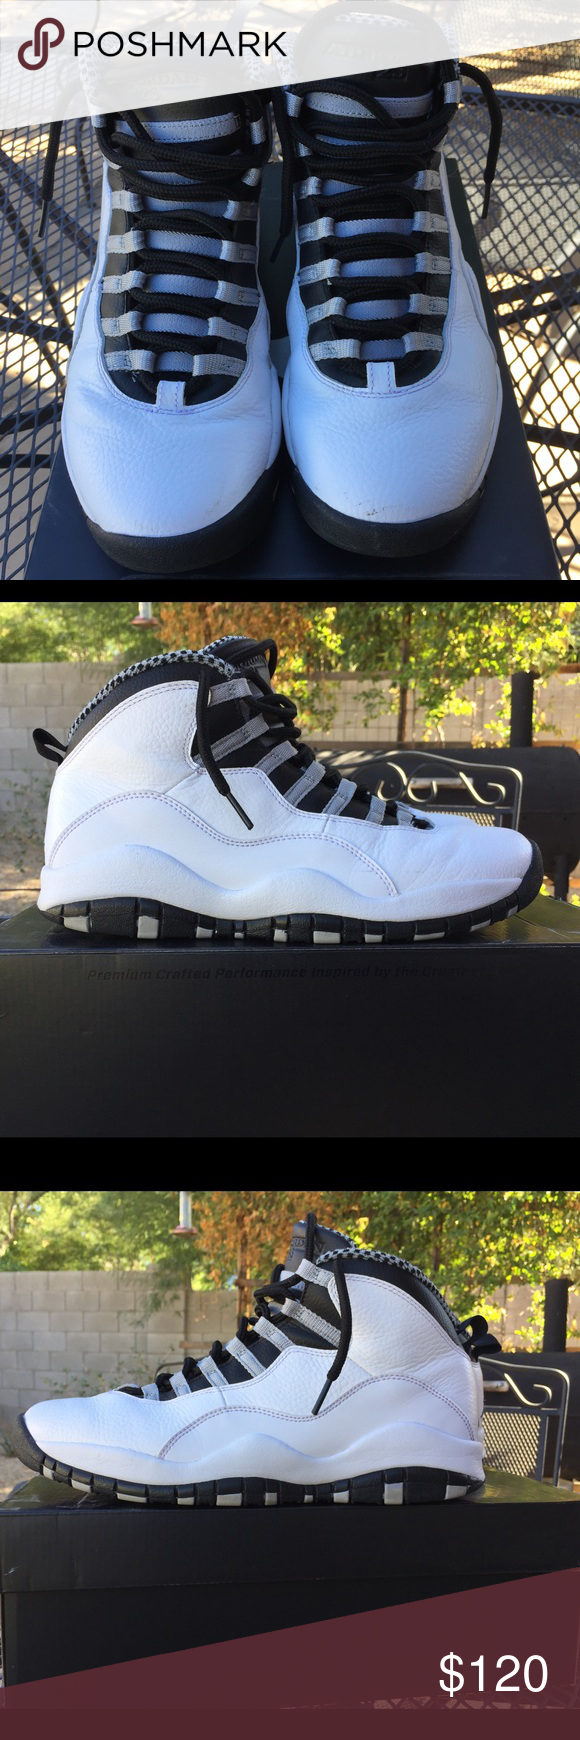 Jordan Steel 10's SOLD Size 9 Used but in good condition  Comes with the box  Asking $120 obo Jordan Shoes Athletic Shoes